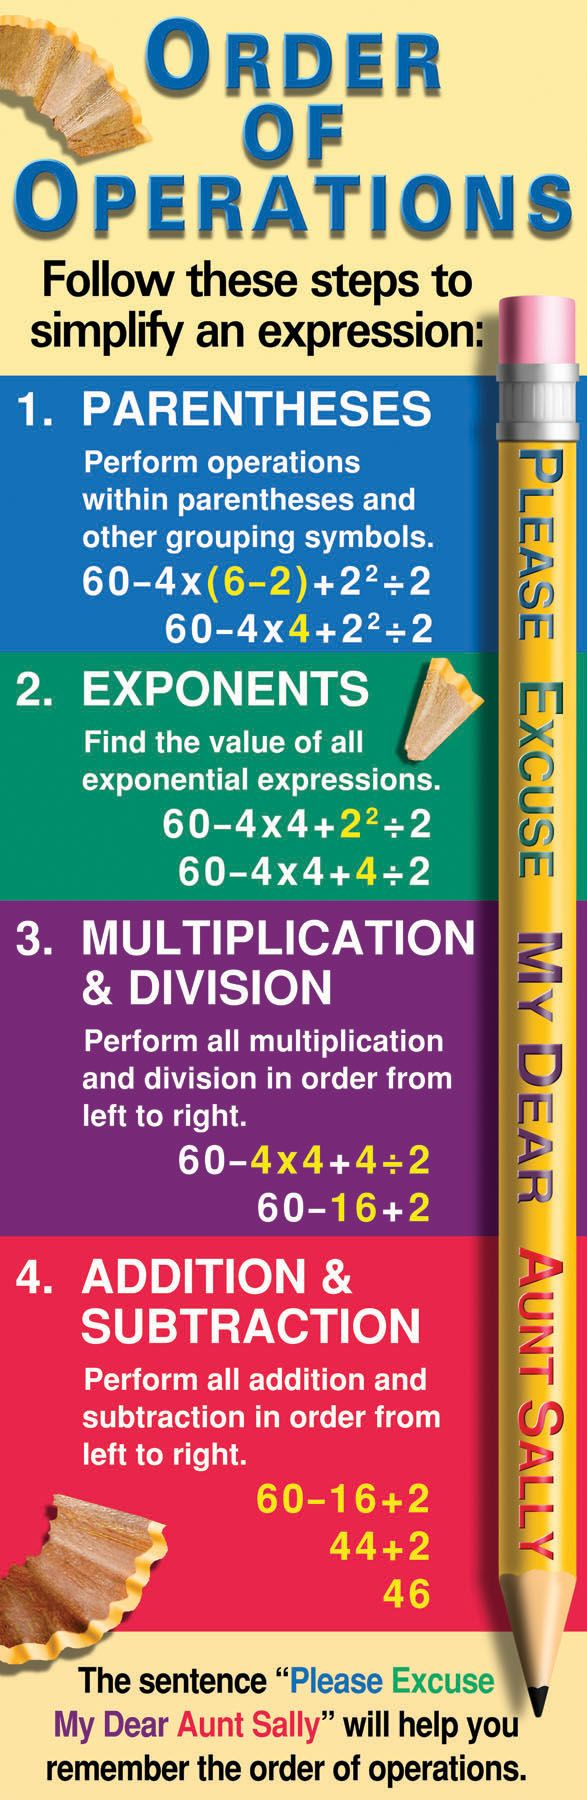 Middle School | Classroom Decorations | Order of Operations #math